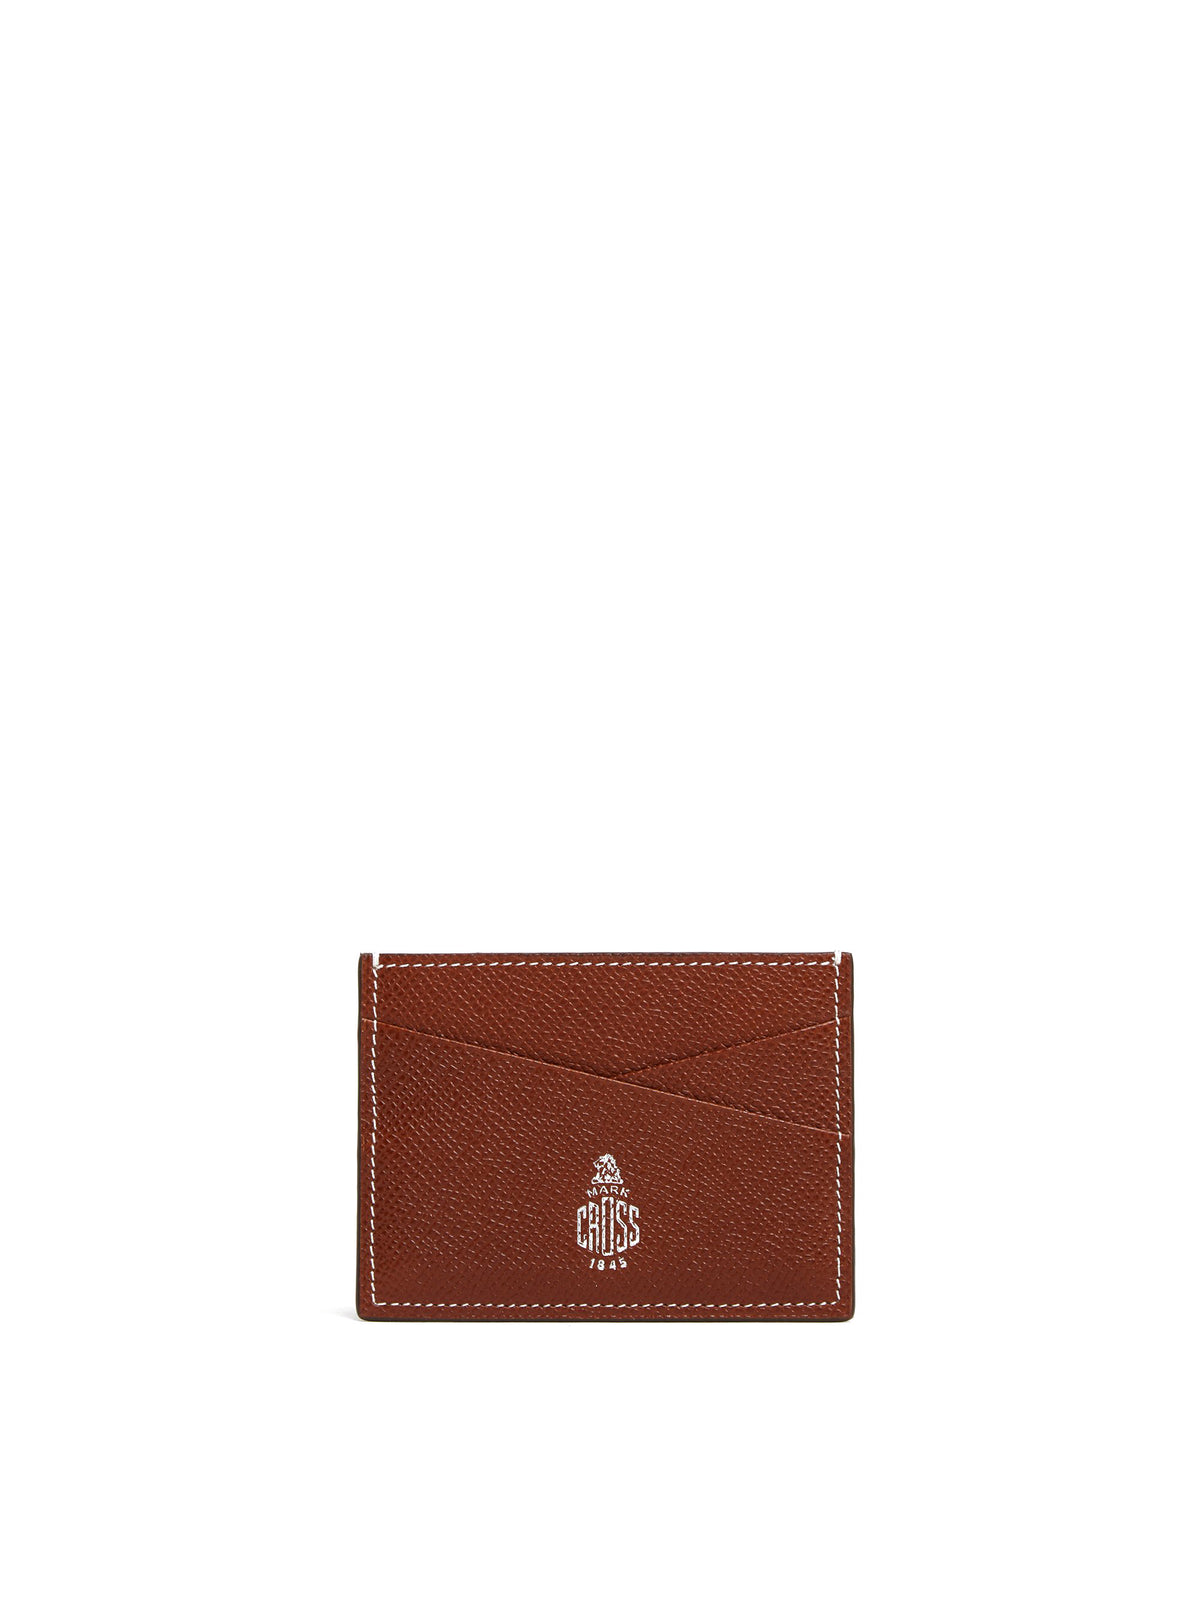 Mark Cross Leather Card Case Saffiano Acorn Front